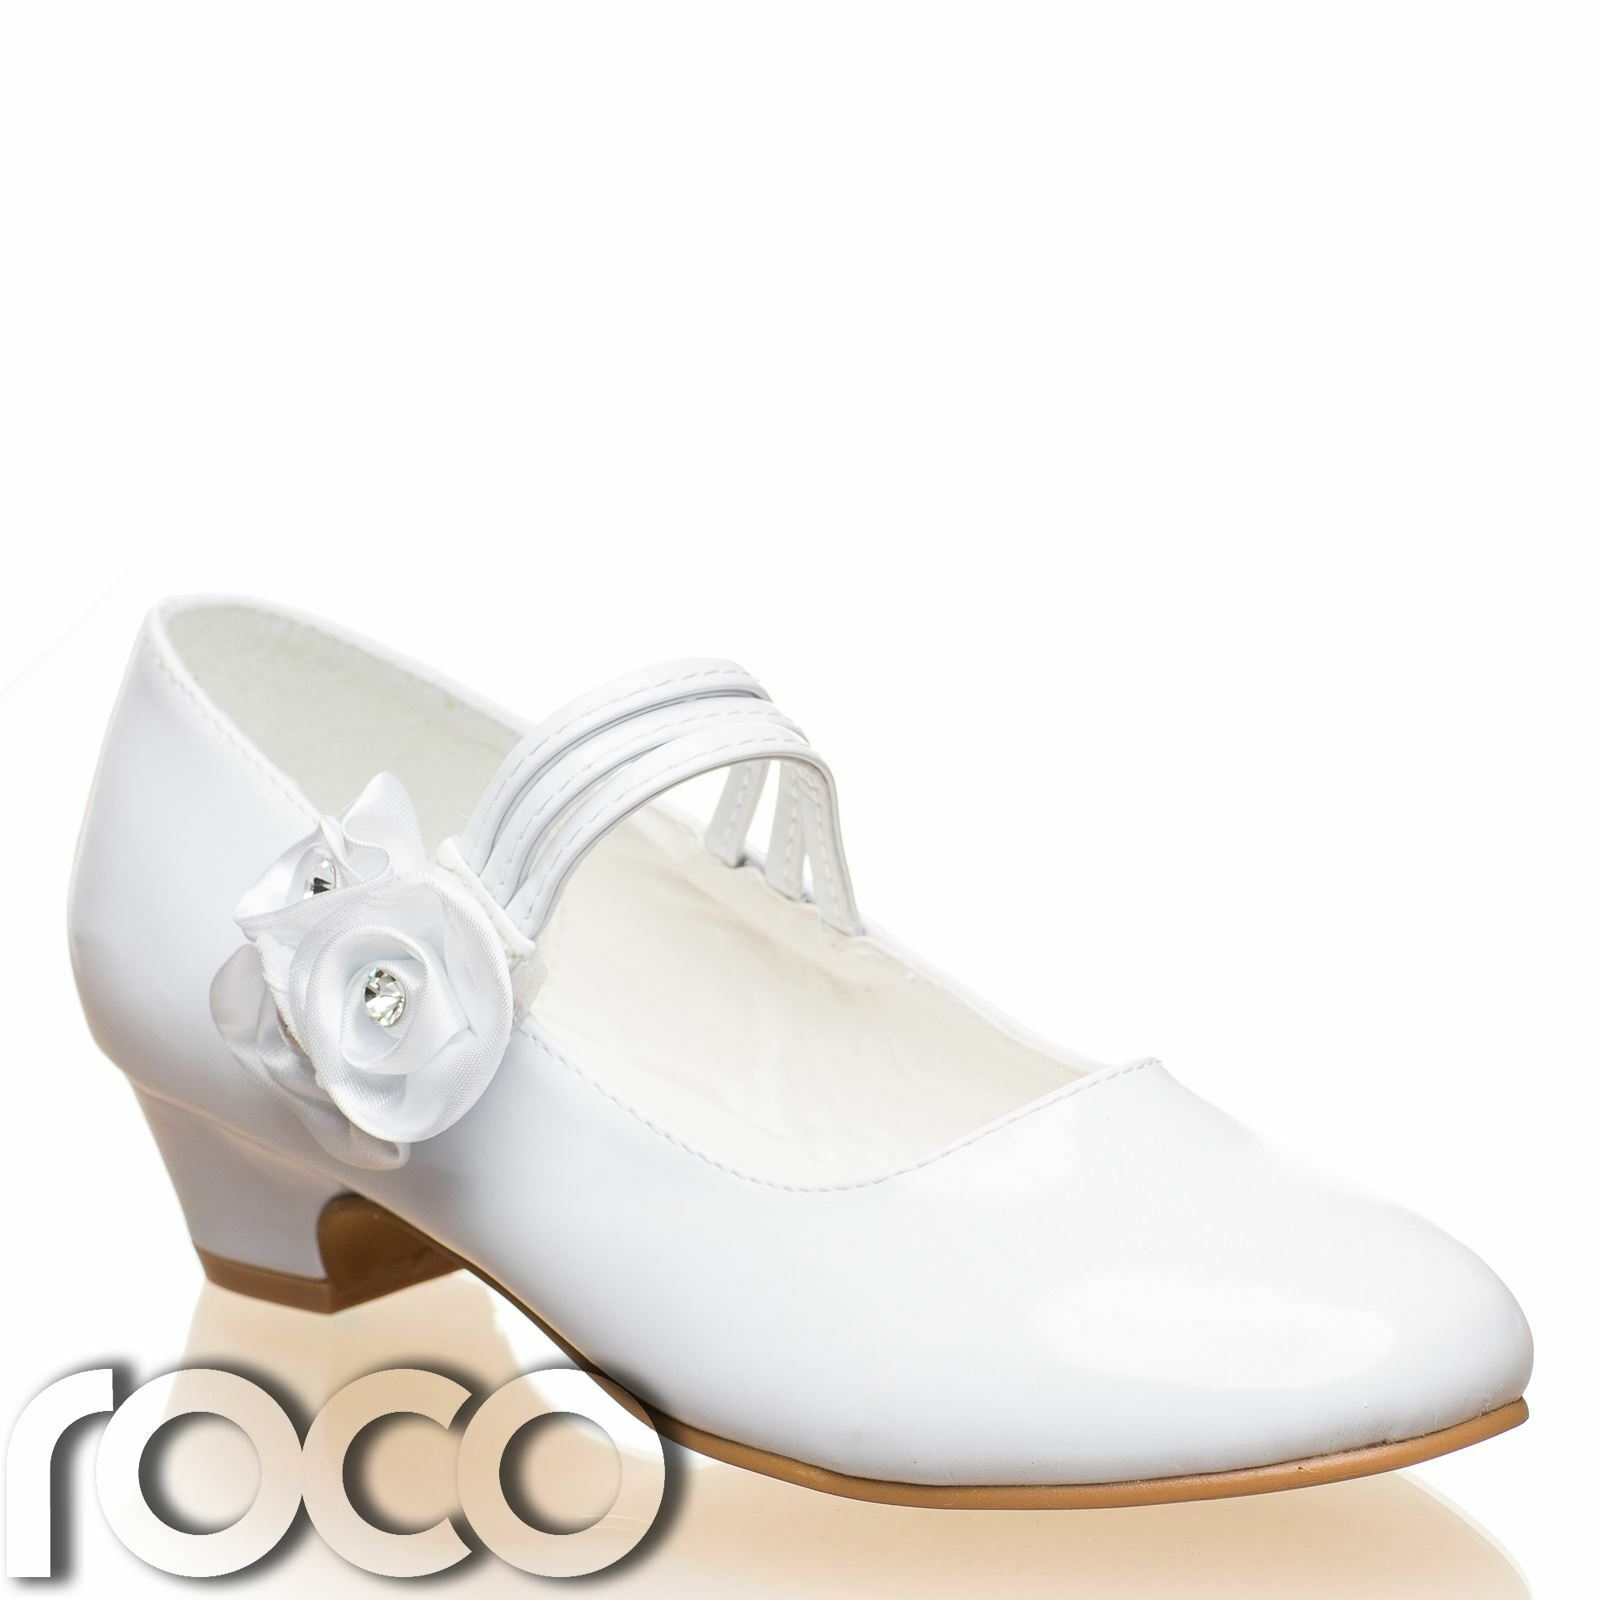 Girls Shoes Kids Clothing Shoes Accs Clothing Shoes